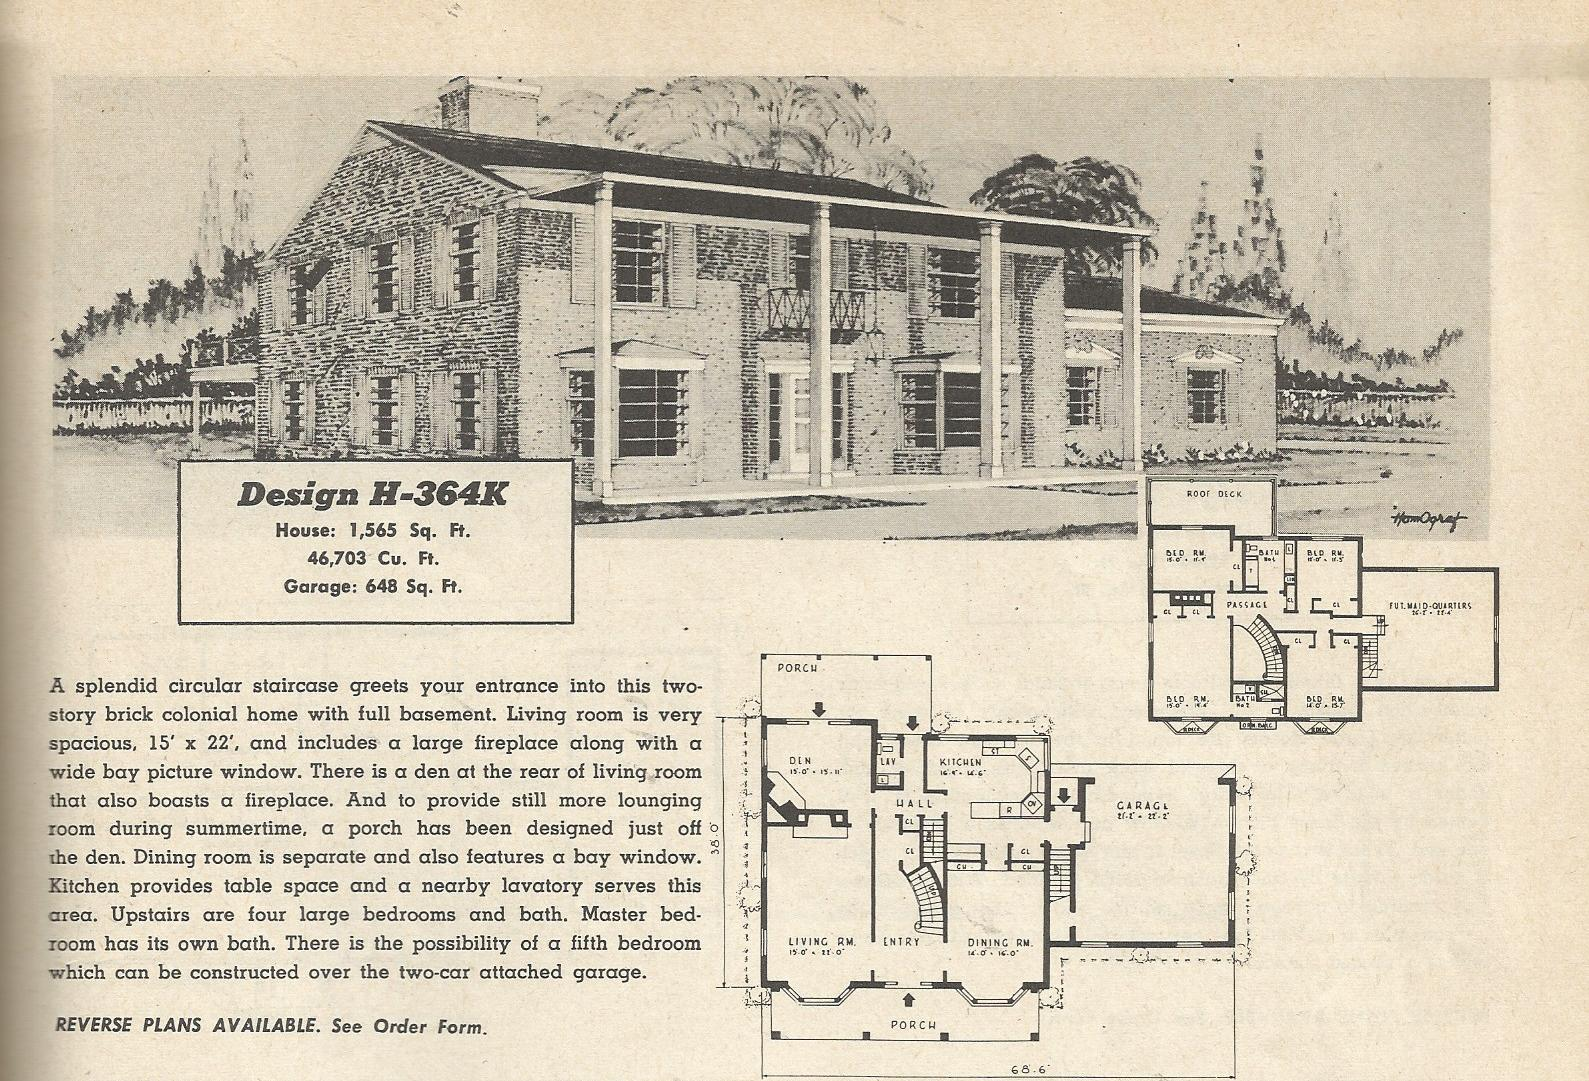 Vintage house plans 364 antique alter ego for Vintage home plans